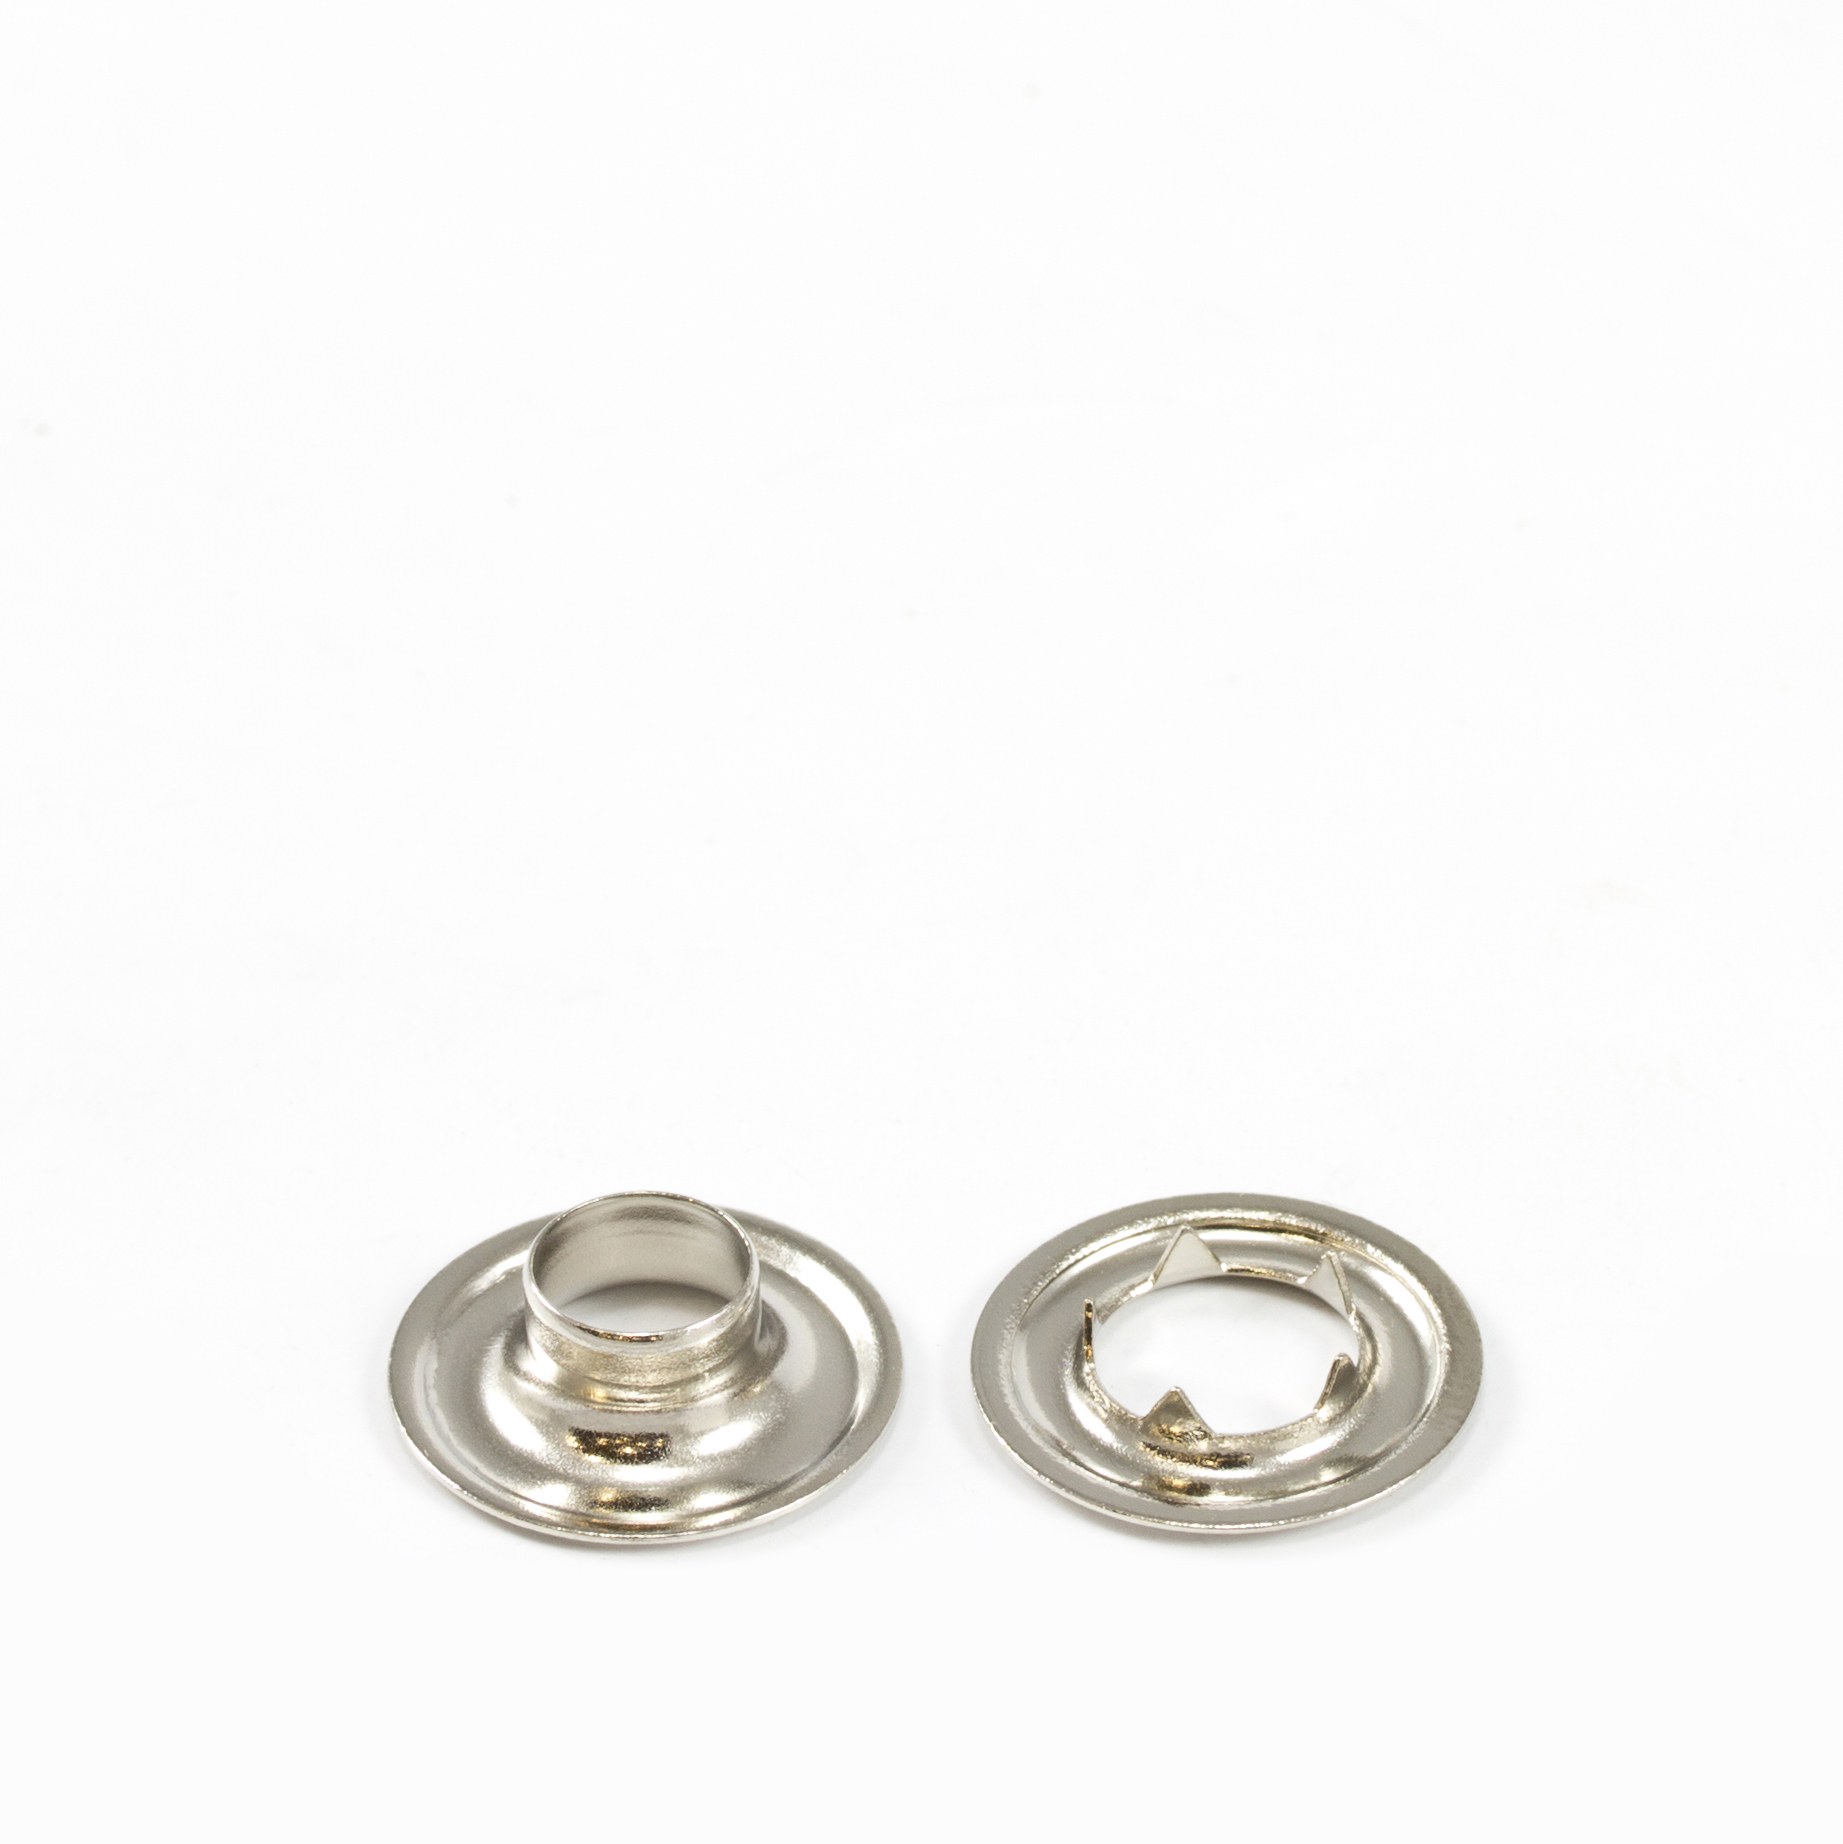 Grommet with Tooth Washer #1 Brass Nickel Plated 9/32